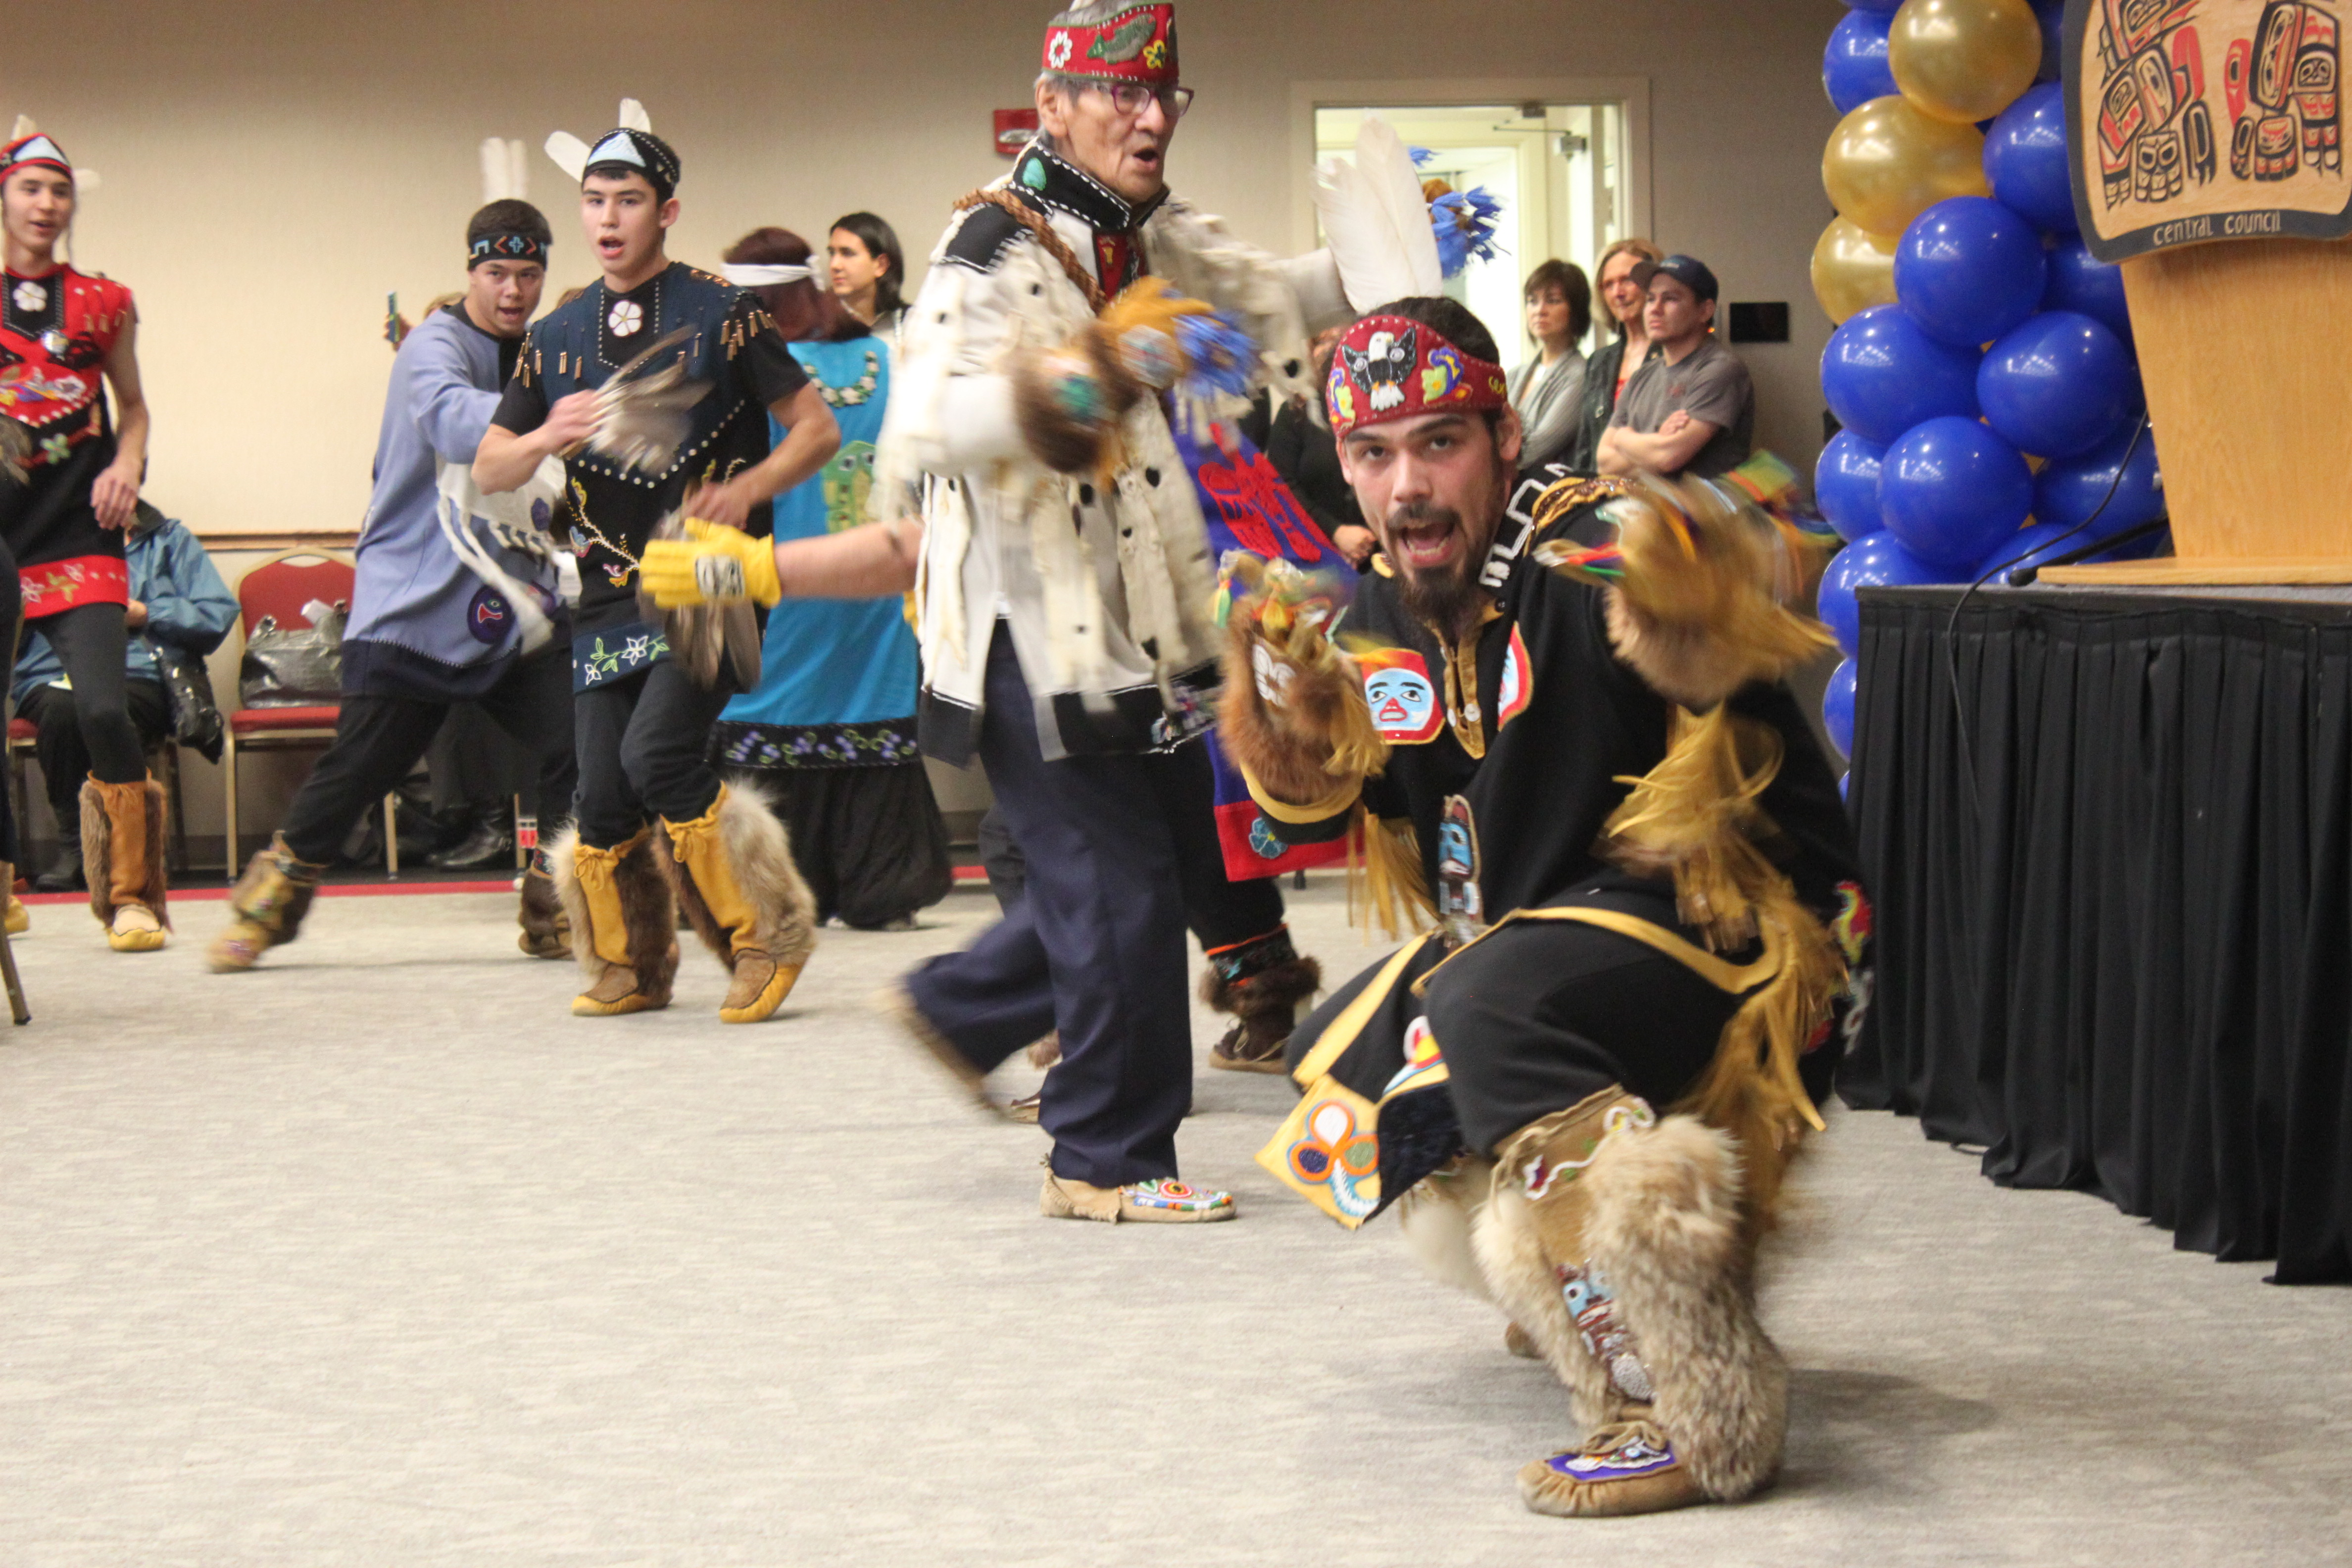 The Mount St. Elias Dancers of Yakutat took the stage during the inauguration and again at the welcome reception. John Patrick Buller leads the dancers in. (Photo by Lisa Phu/KTOO)